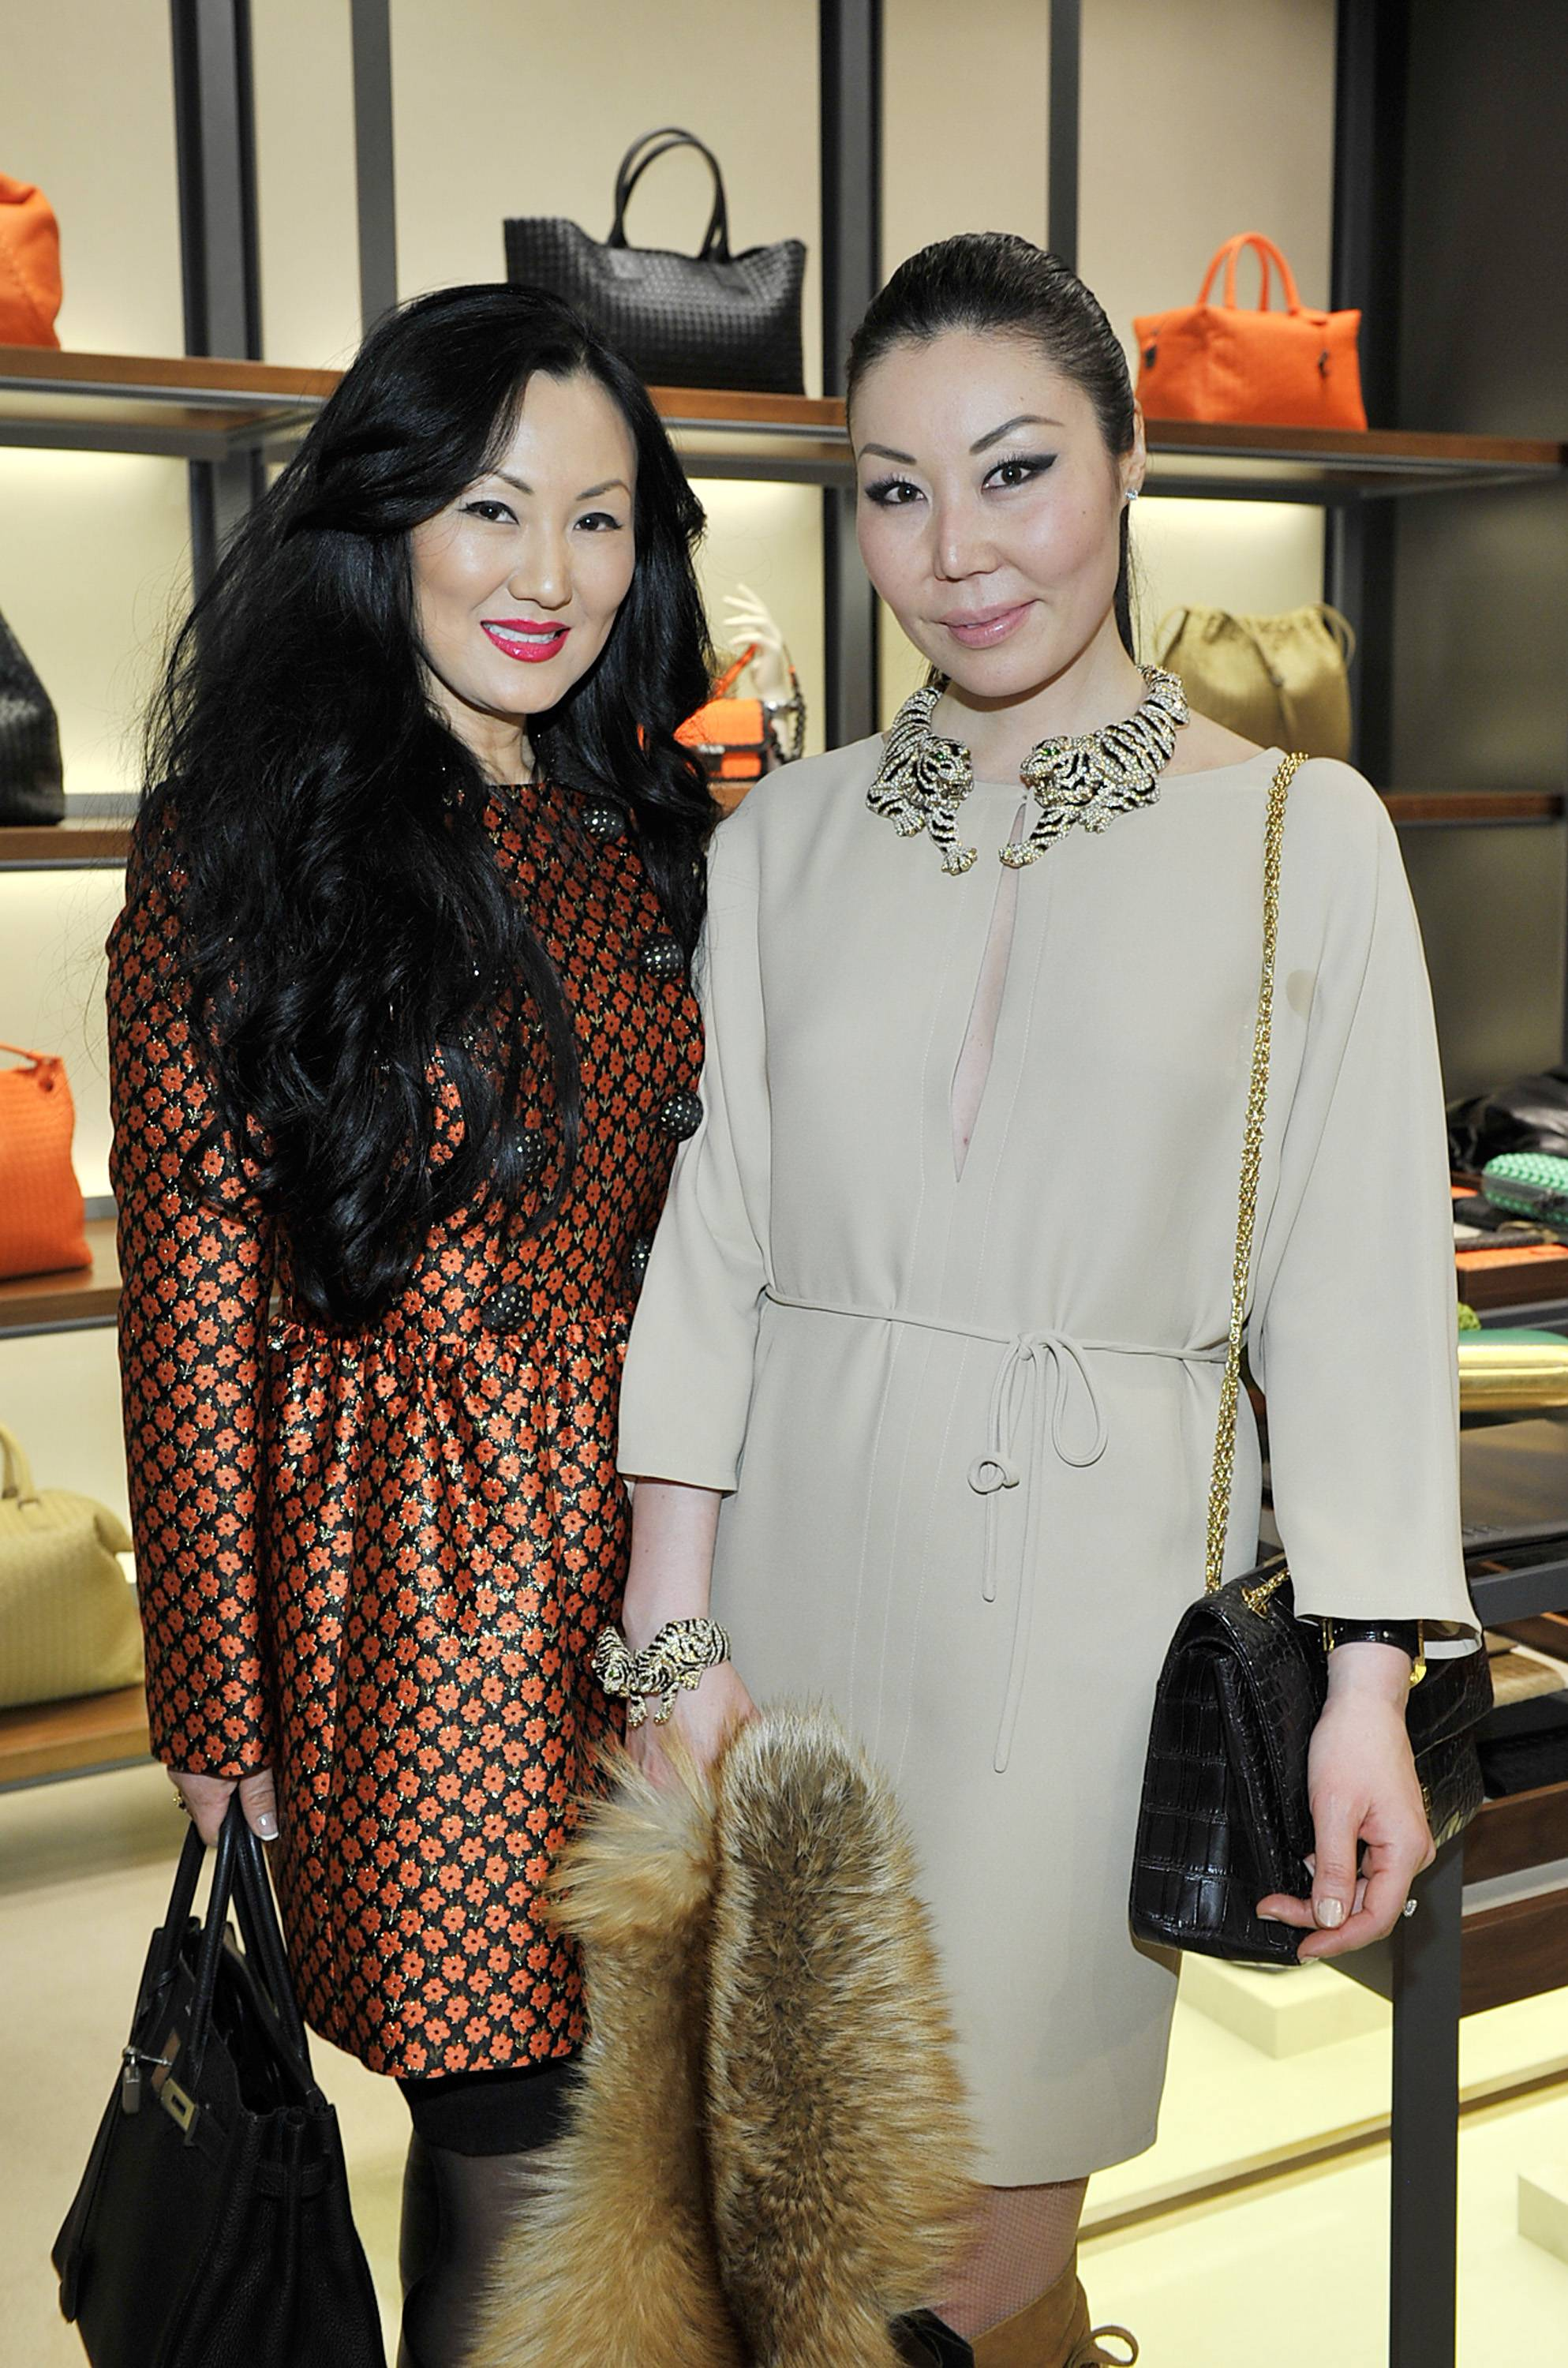 Judy Chang, Michelle Horowitz